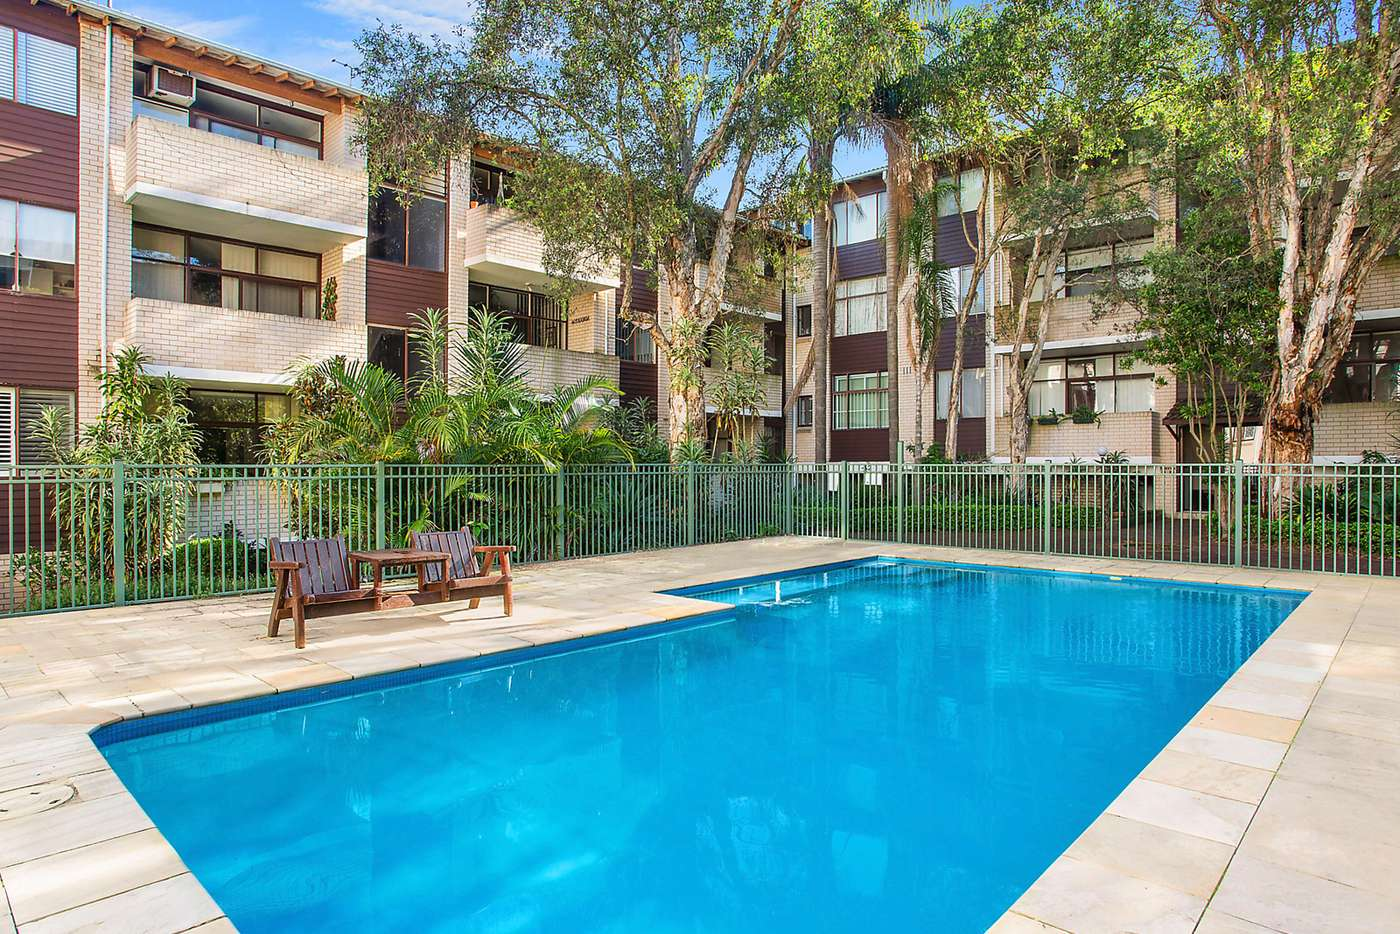 Main view of Homely apartment listing, 6/54-58 Solander Street, Monterey NSW 2217